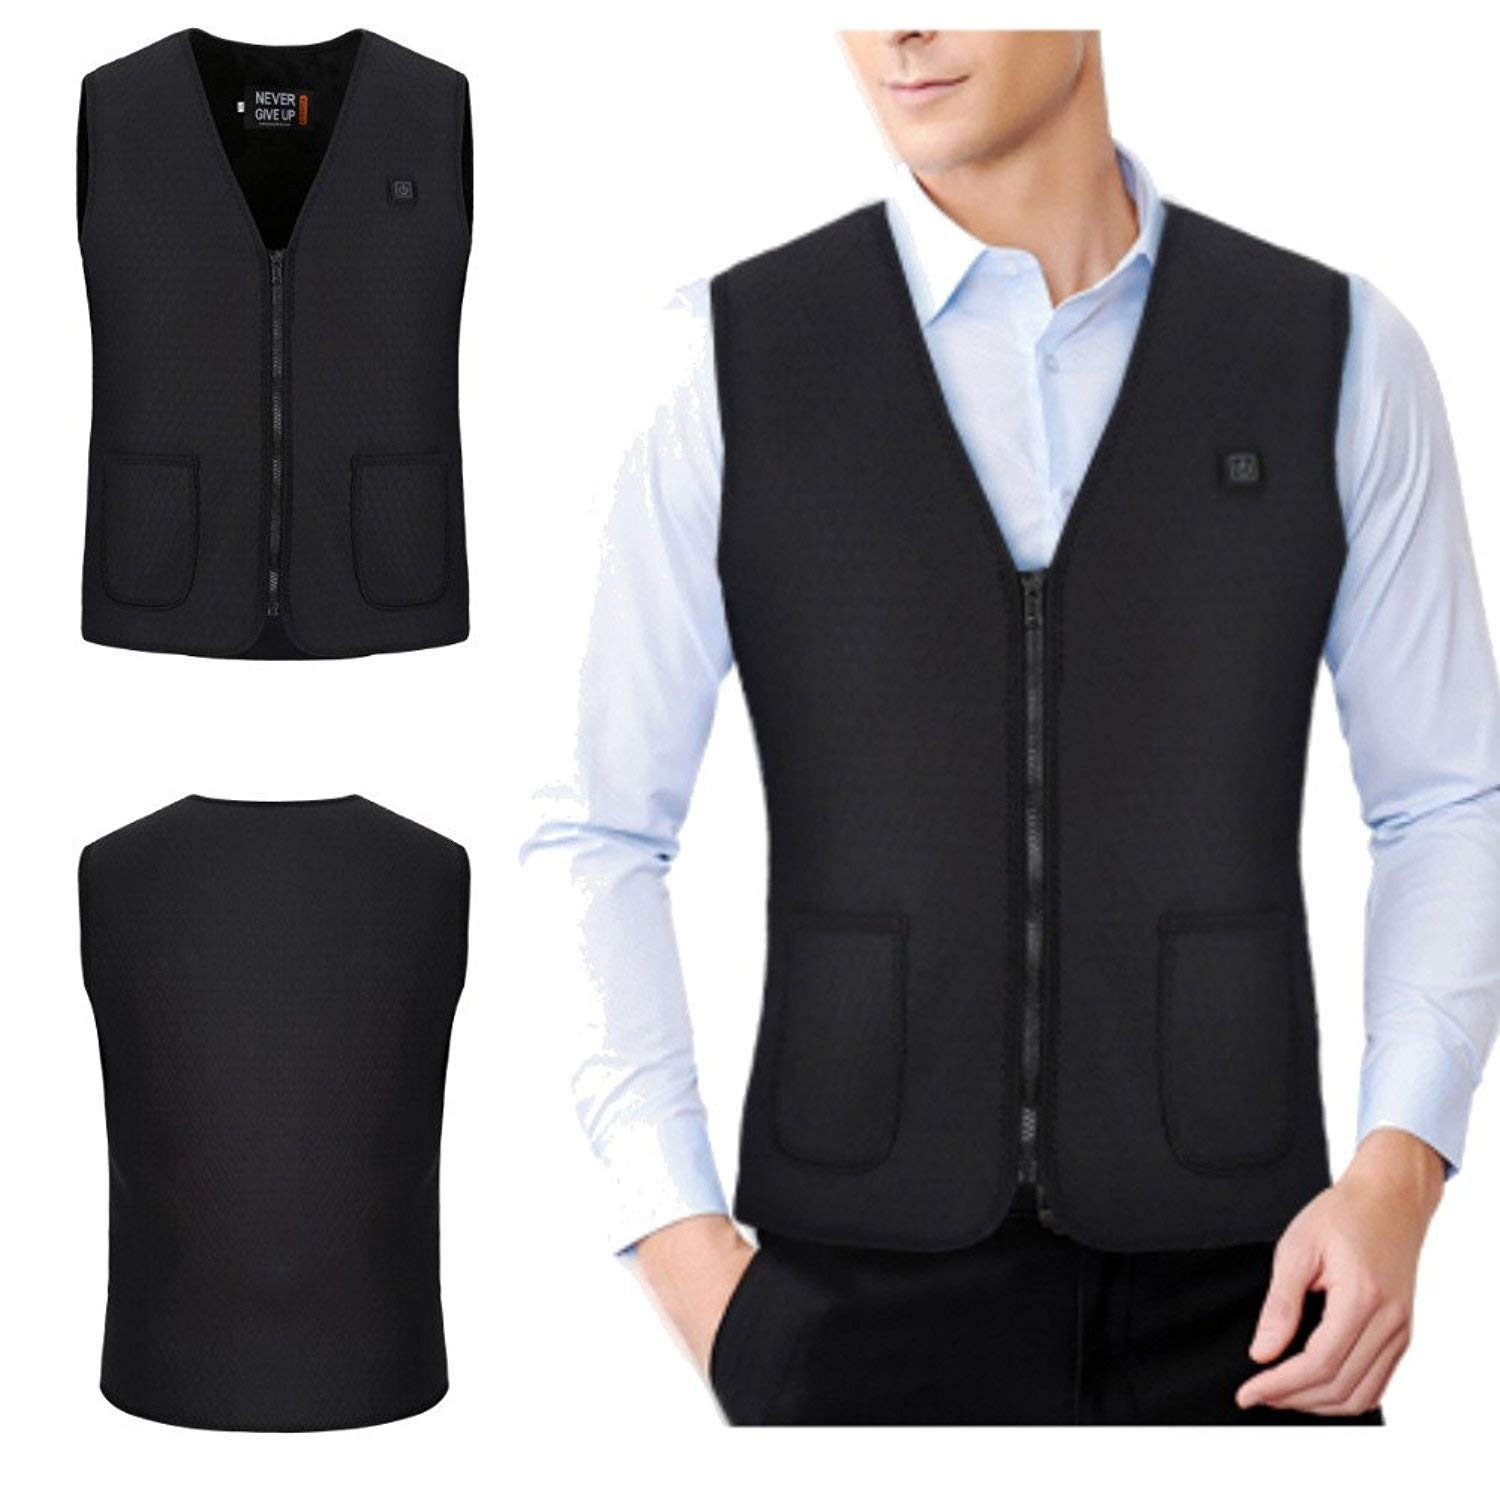 Heated Vest Canada Cheap Heated Clothing Canada Find Heated Clothing Canada Deals On